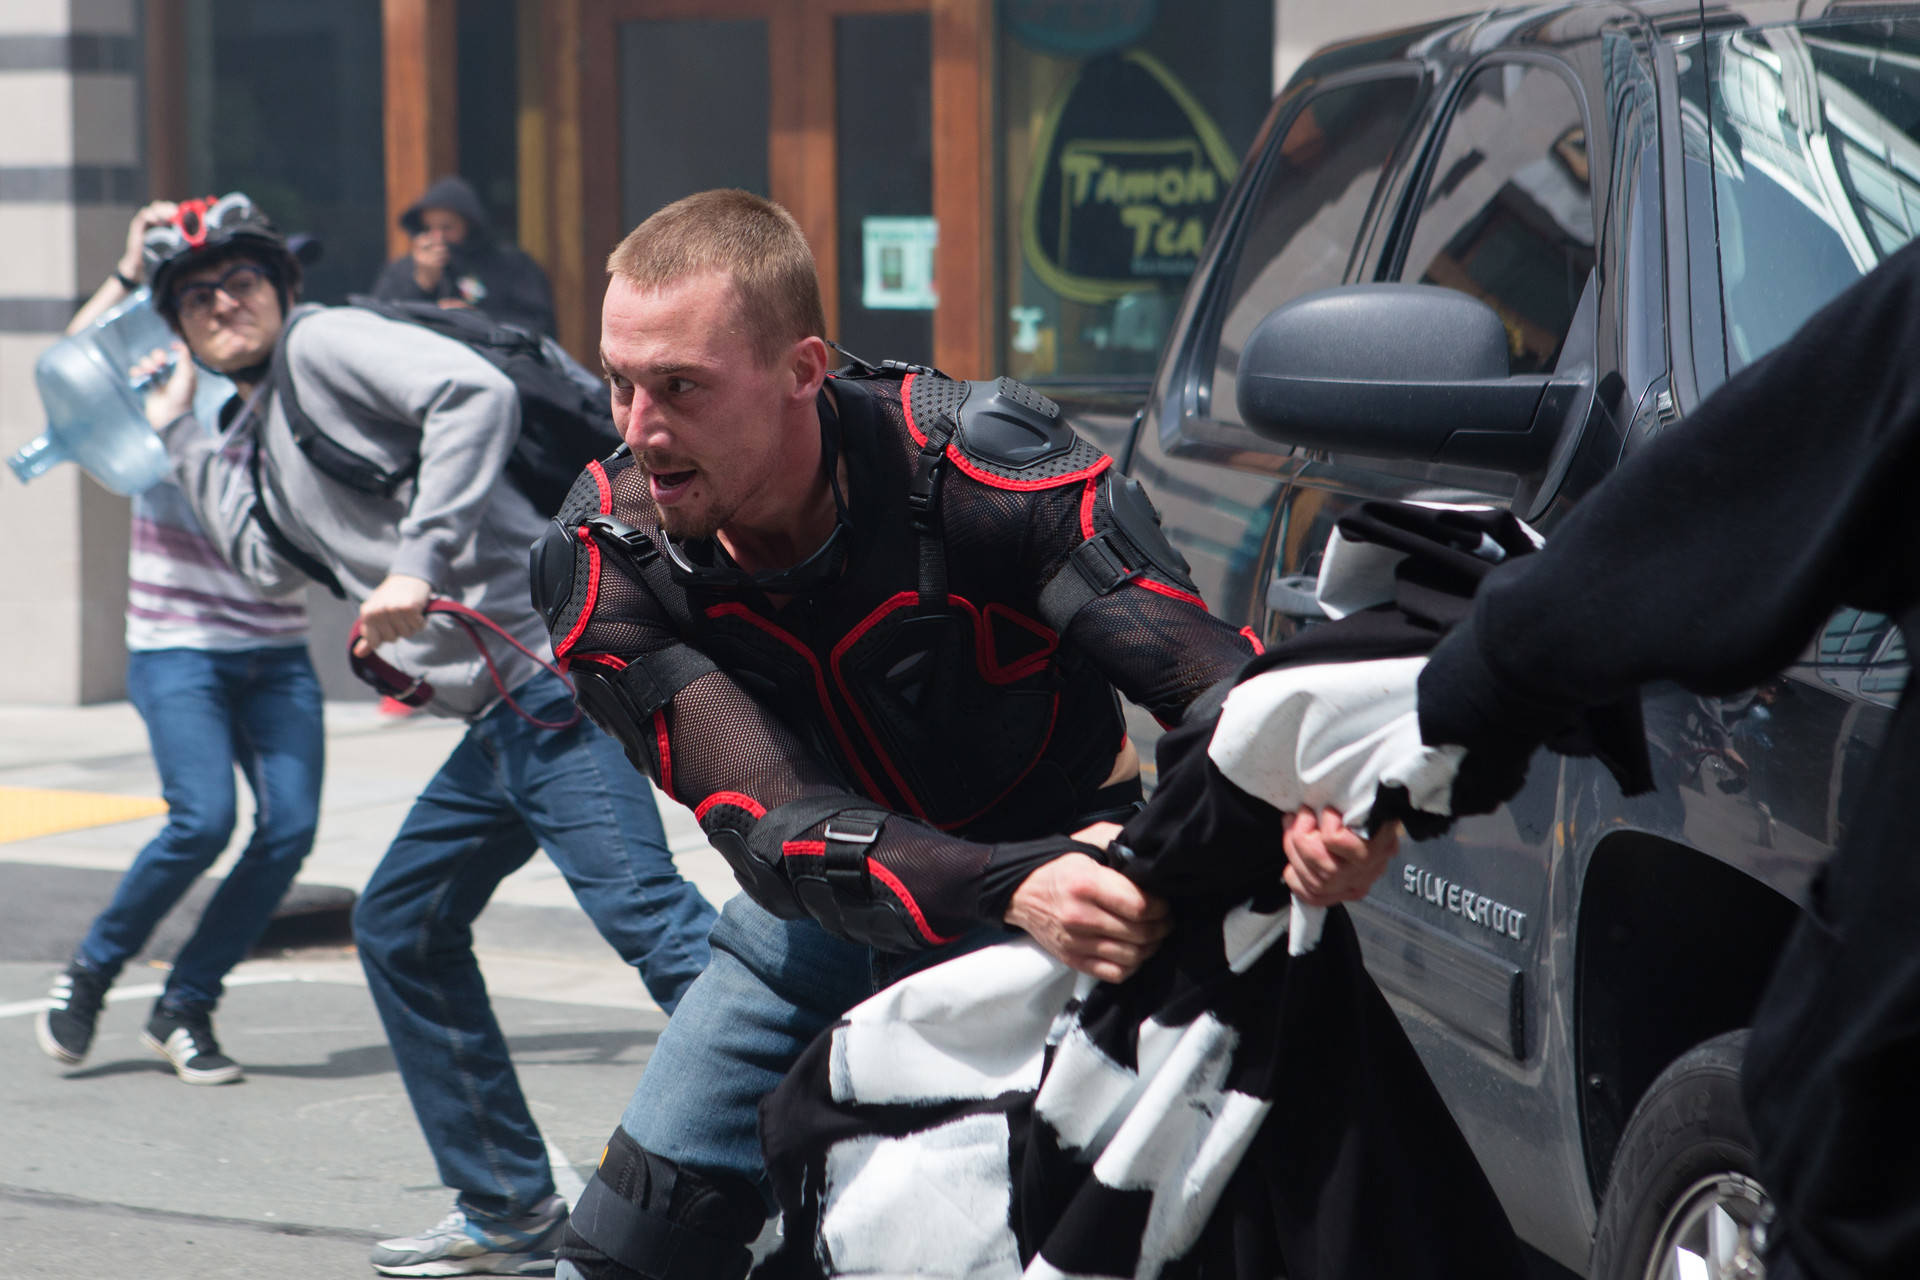 Right-wing activists fight counterprotesters in downtown Berkeley on April 15, 2017. Although police had the rally cordoned off early in the day, they withdrew after tensions escalated into violence, allowing both sides to engage in a running battle that left at least 11 people injured. Bert Johnson/KQED